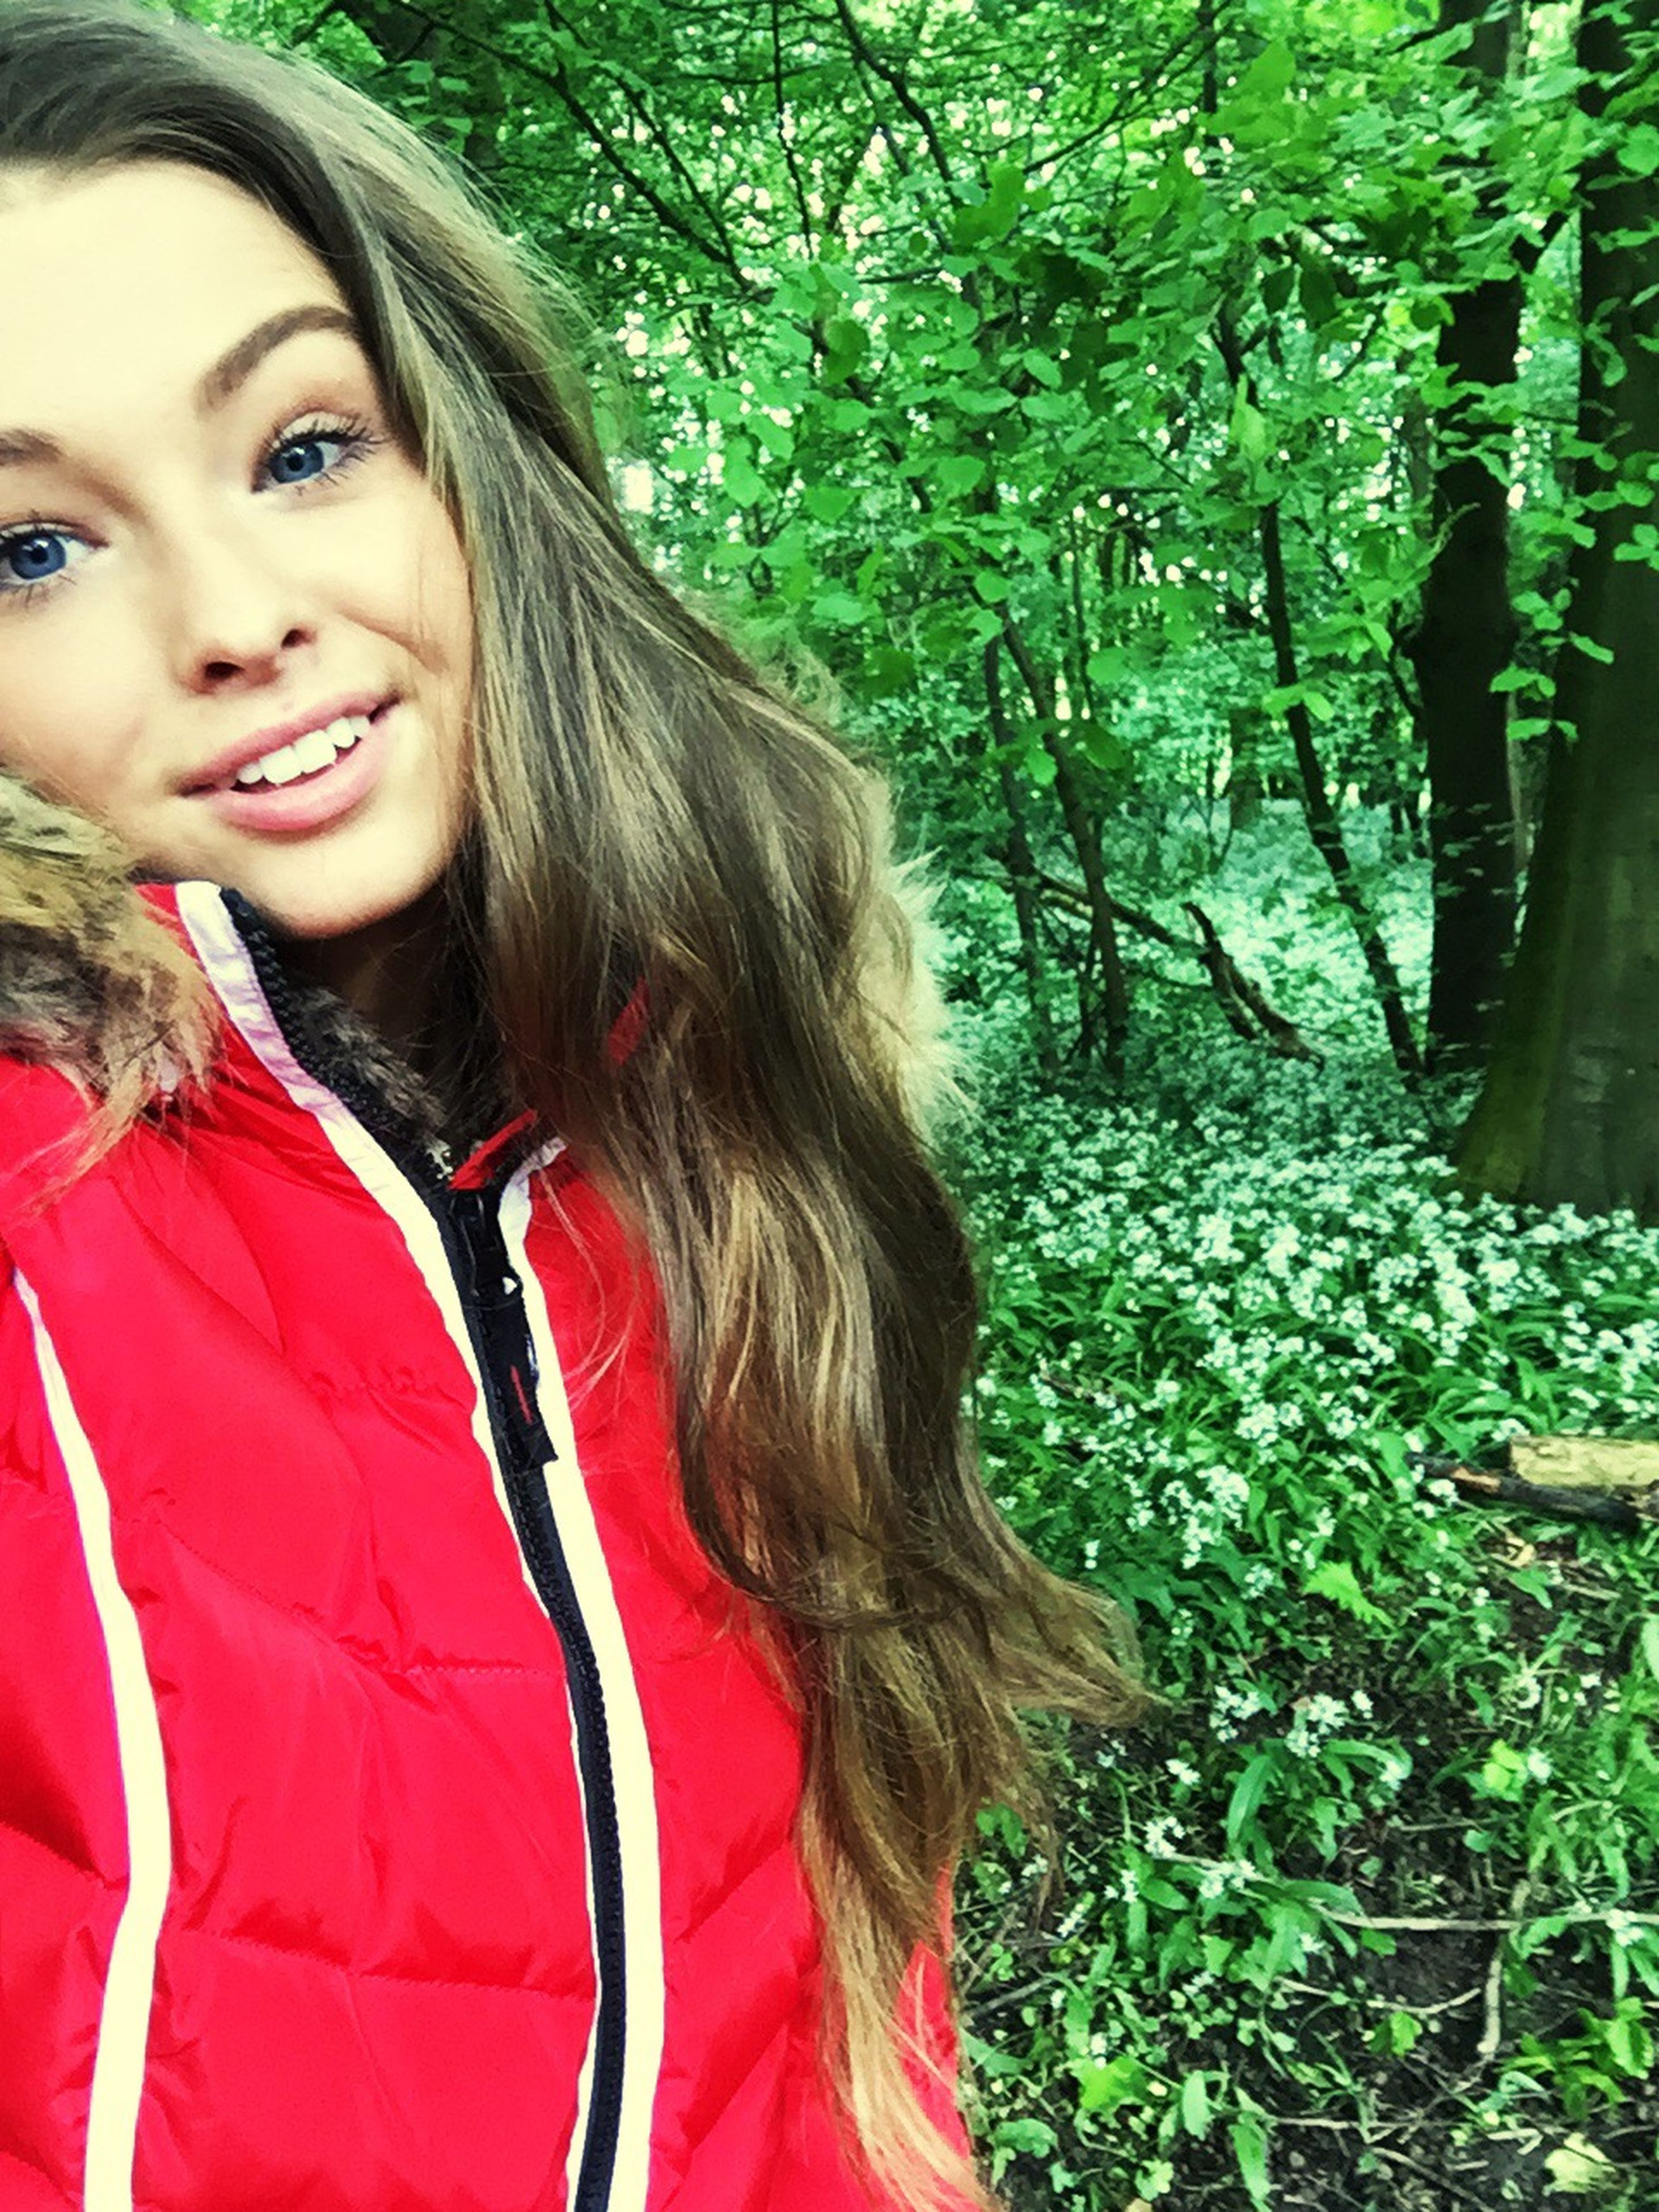 young women, person, young adult, lifestyles, long hair, leisure activity, casual clothing, looking at camera, portrait, smiling, tree, front view, flower, waist up, park - man made space, standing, red